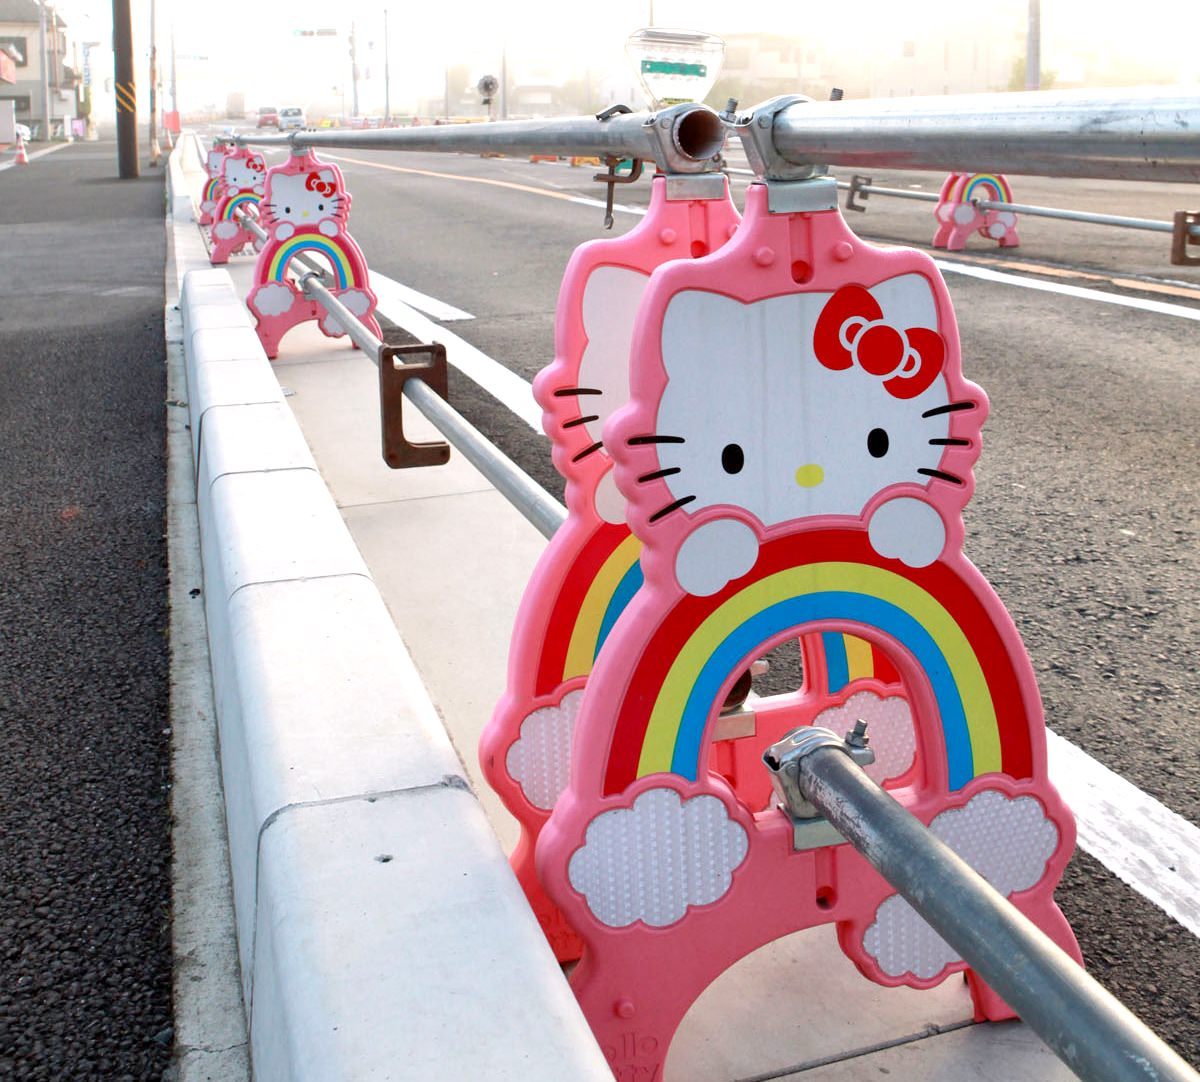 You can find Kawaii things everywhere in Japan, even in construction site